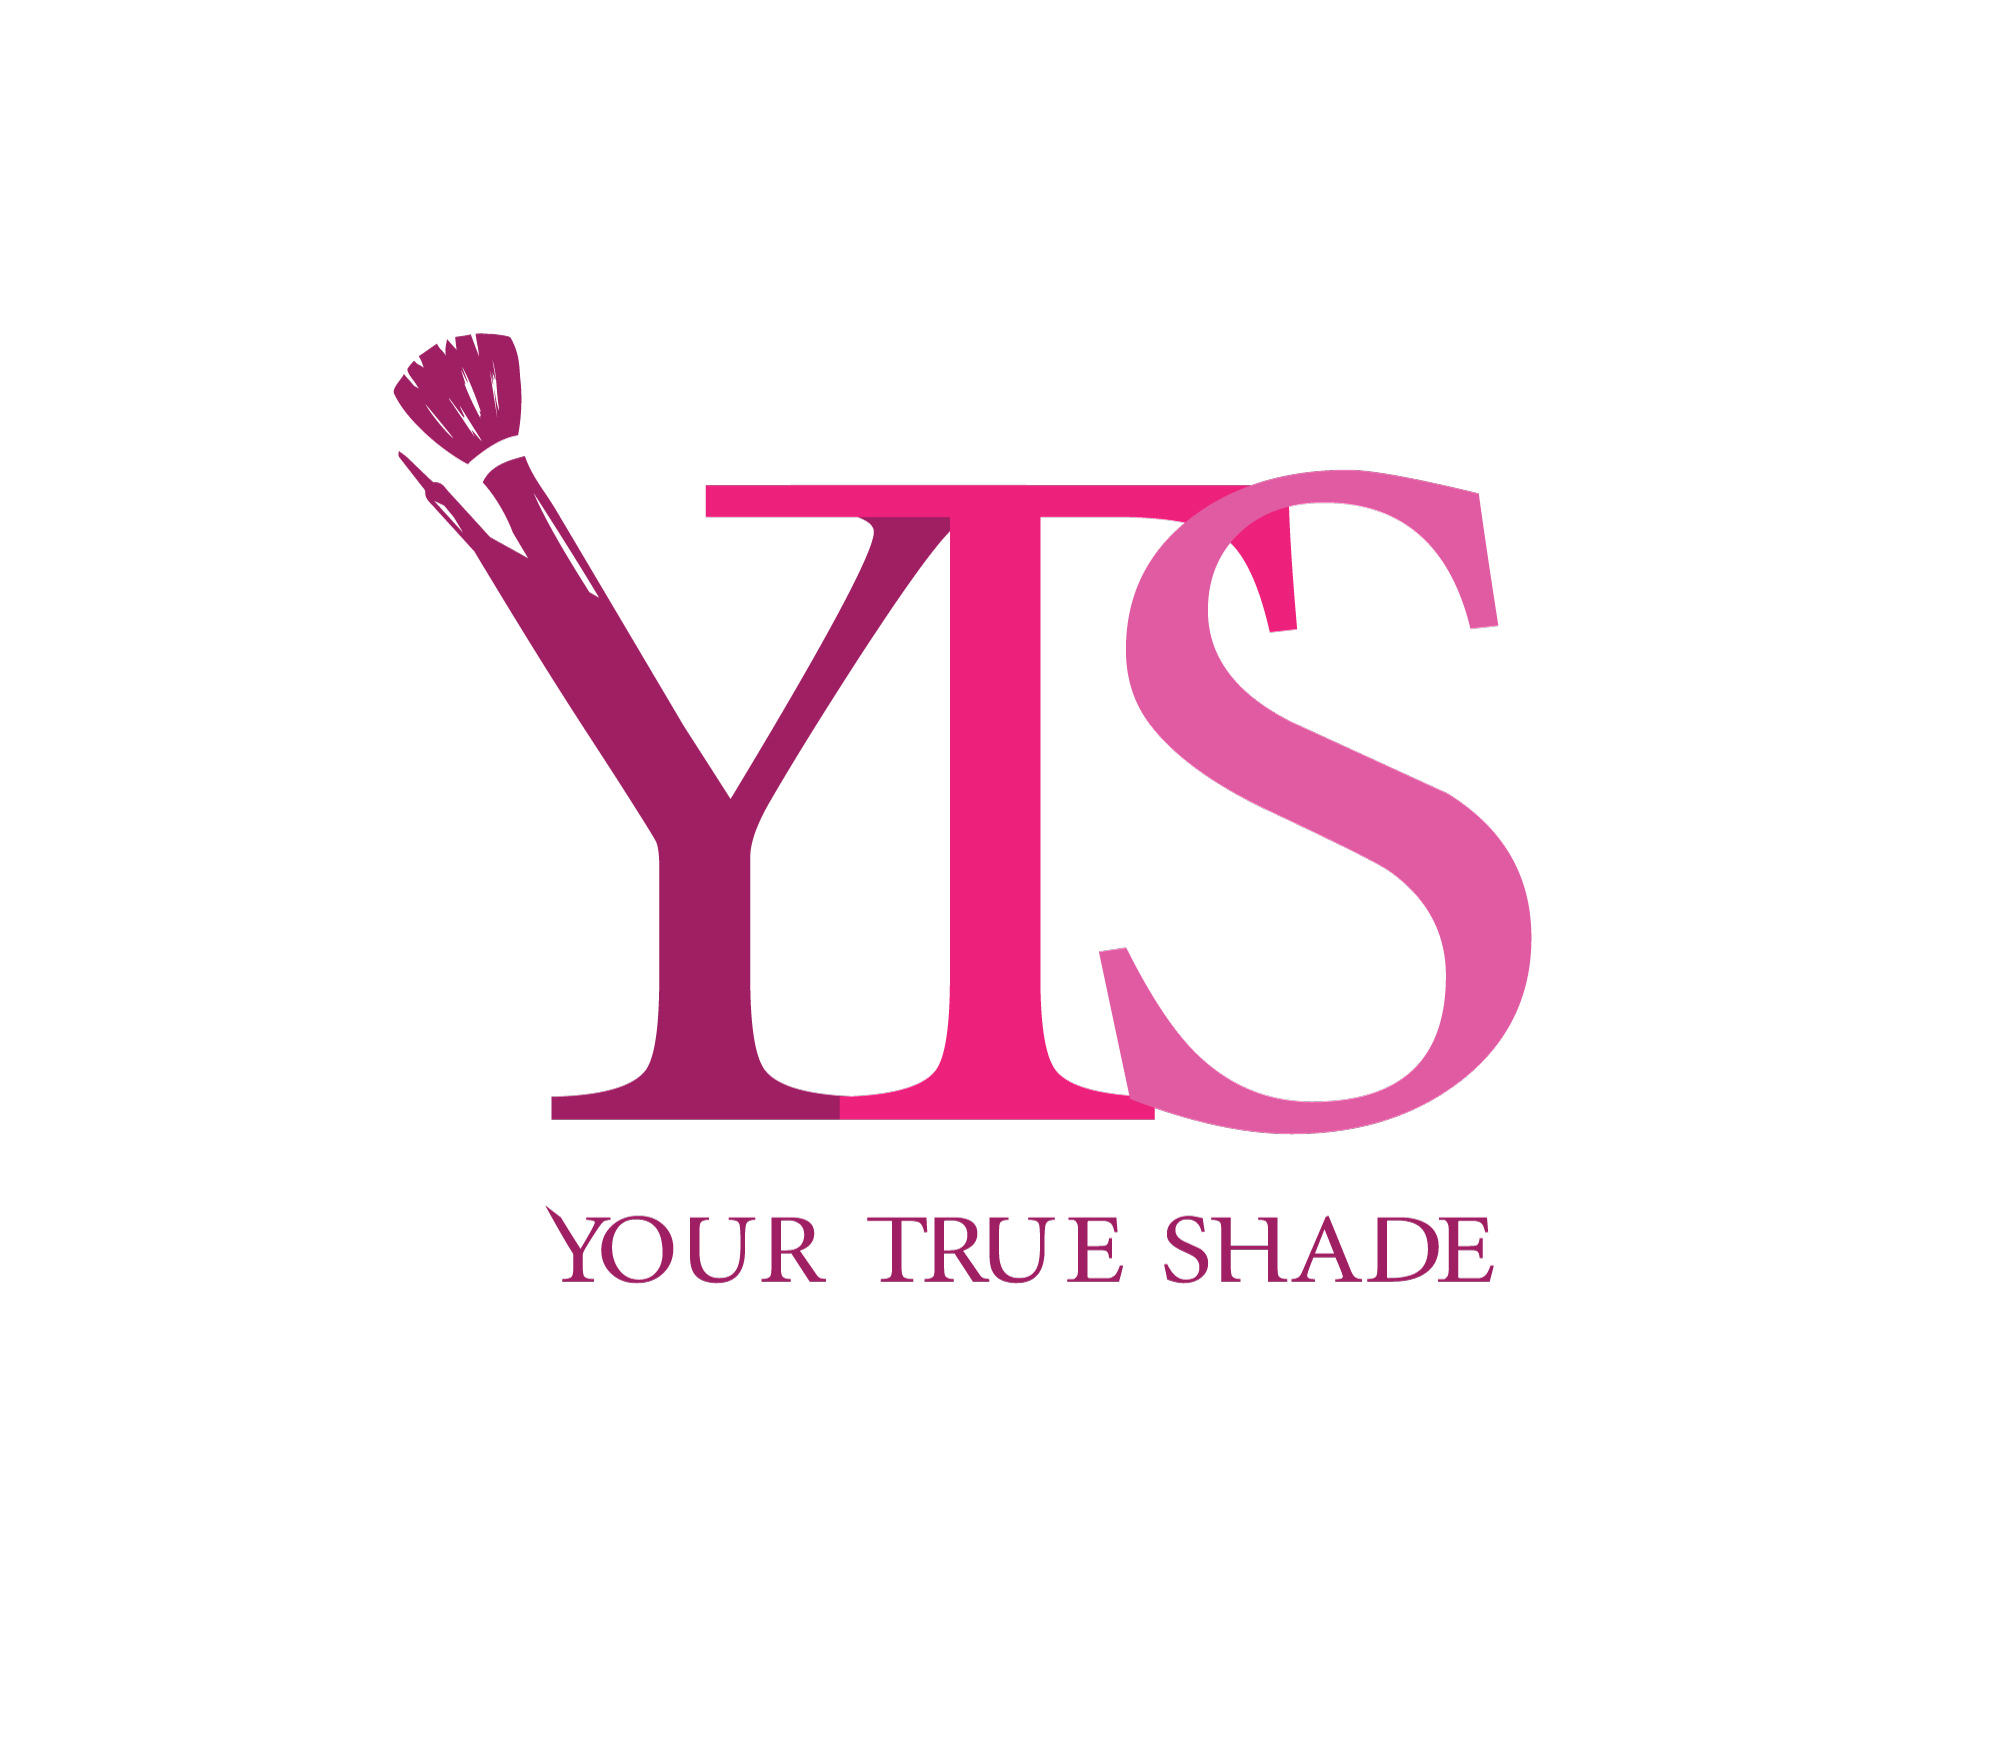 Your-True-Shade-Cosmetics-new-logo-Pink.jpg